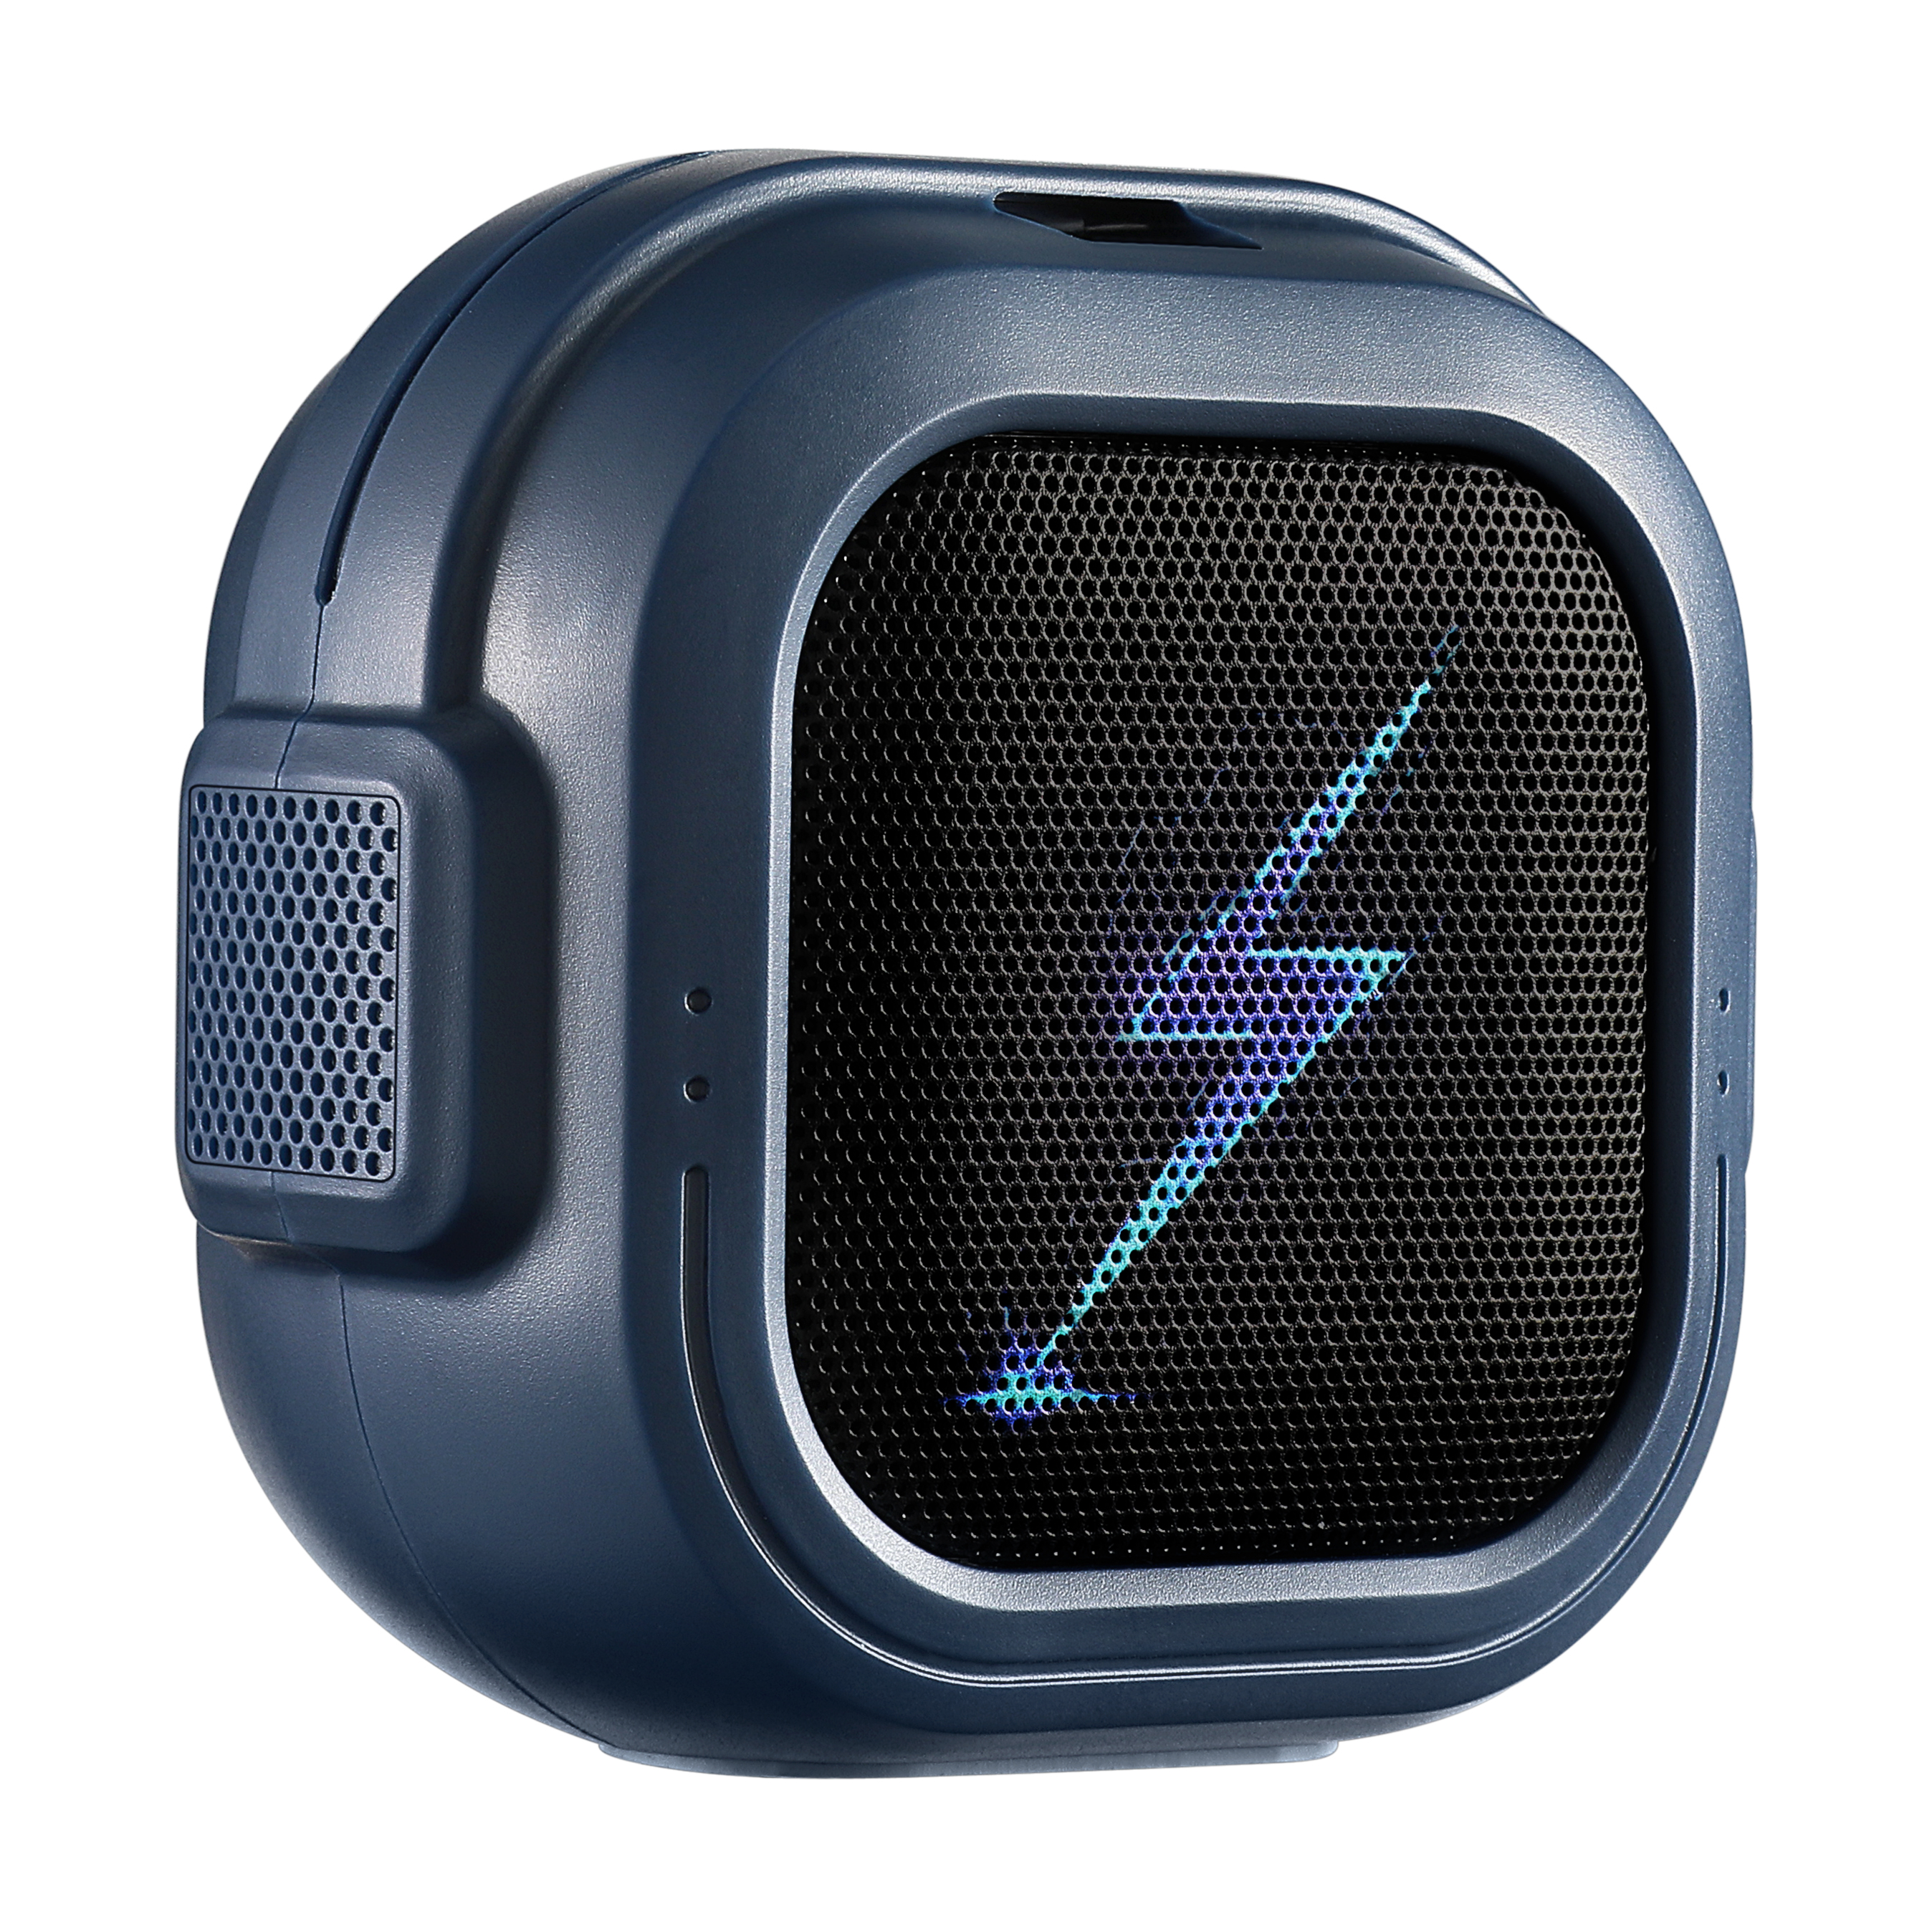 Bluetooth Mini Wireless Speaker with HiFi Bass Small But Loud, The Next Generation of Portable Speakers for Home, Outdoors (Navy Blue)